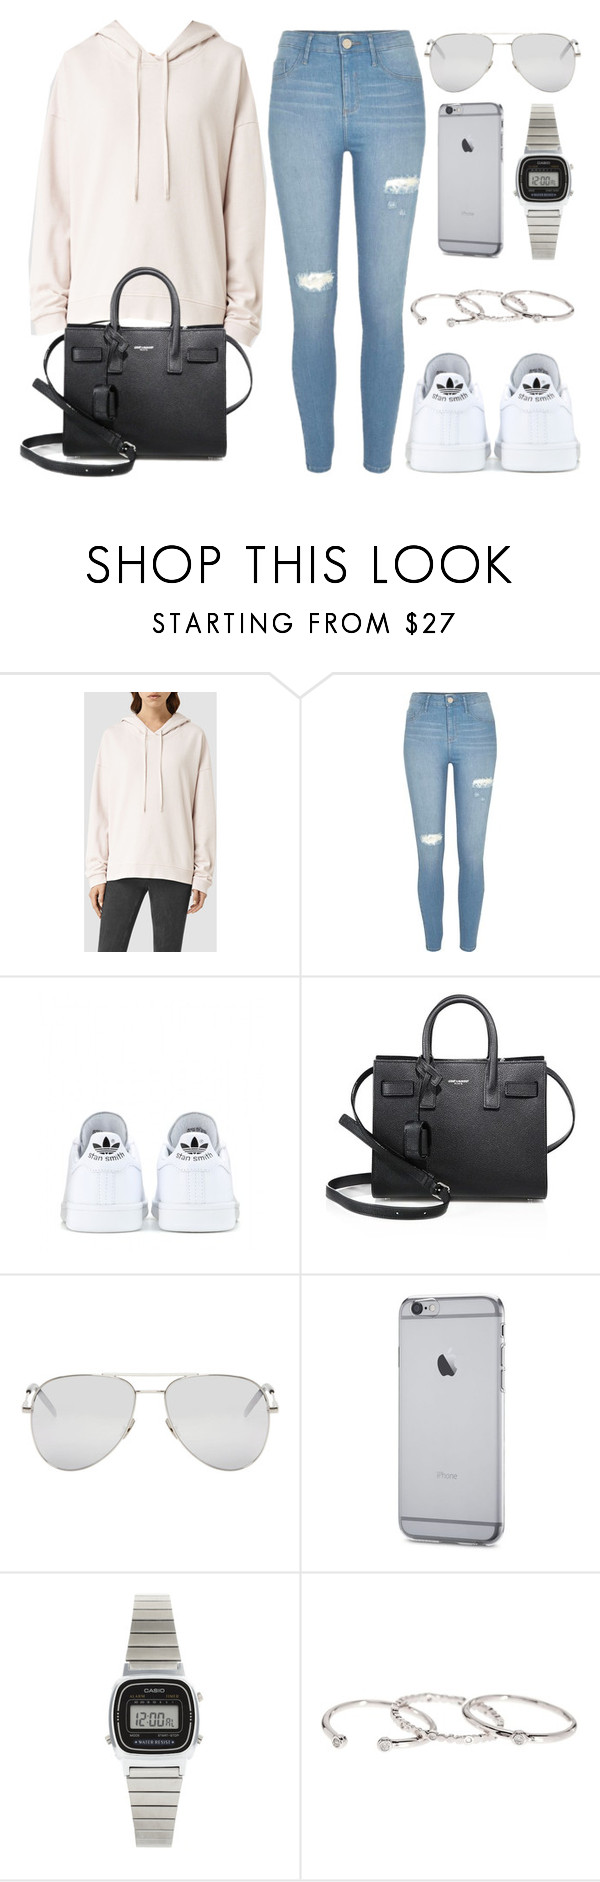 """""""Style #11411"""" by vany-alvarado ❤ liked on Polyvore featuring AllSaints, River Island, adidas, Yves Saint Laurent, Casio and Gorjana"""